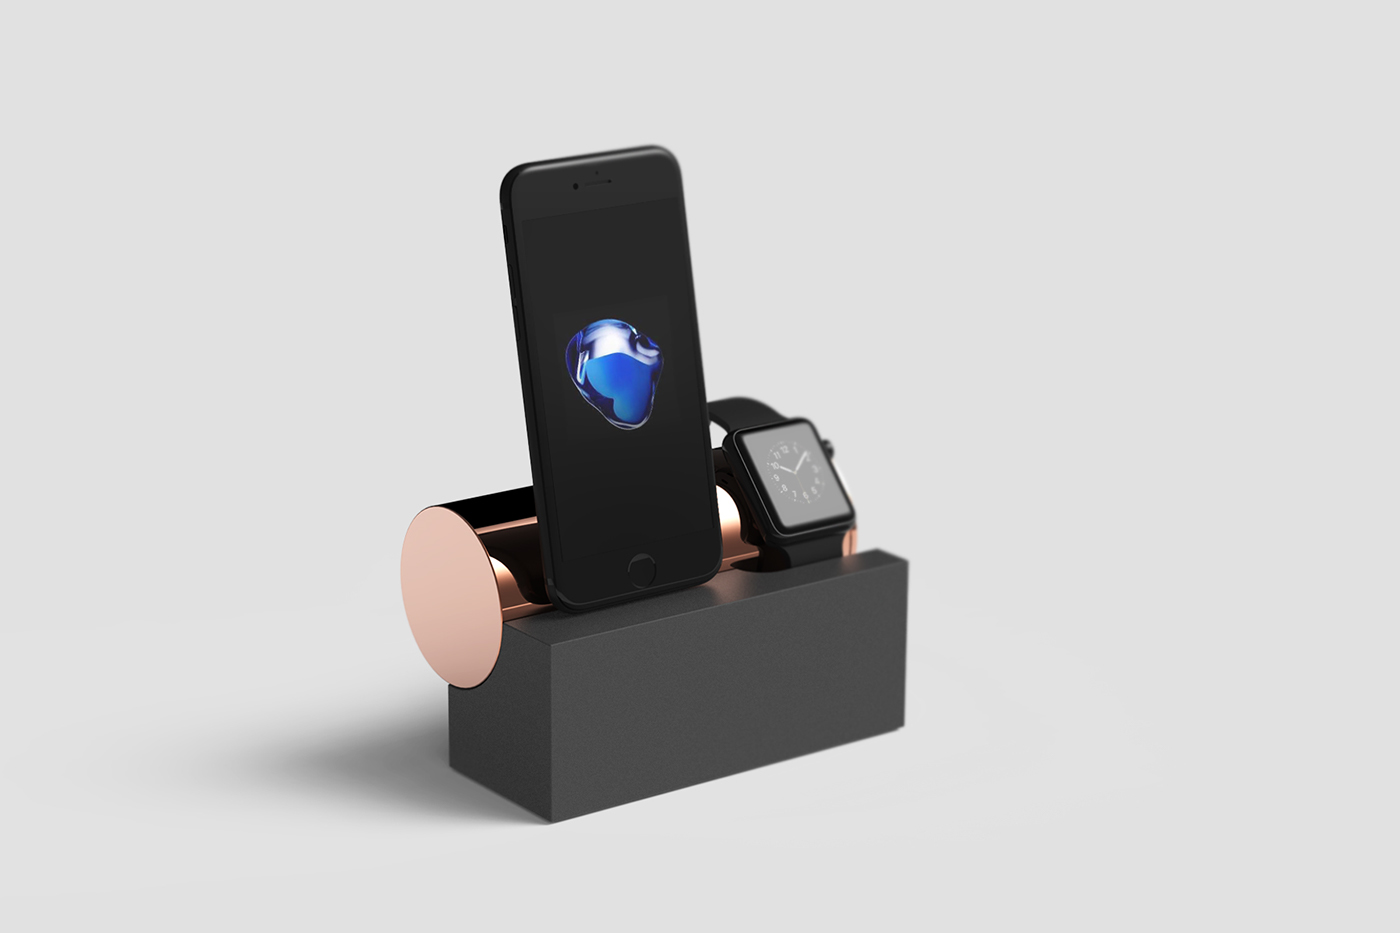 smartphone apple smartphone holder Stand geometric foundfounded object